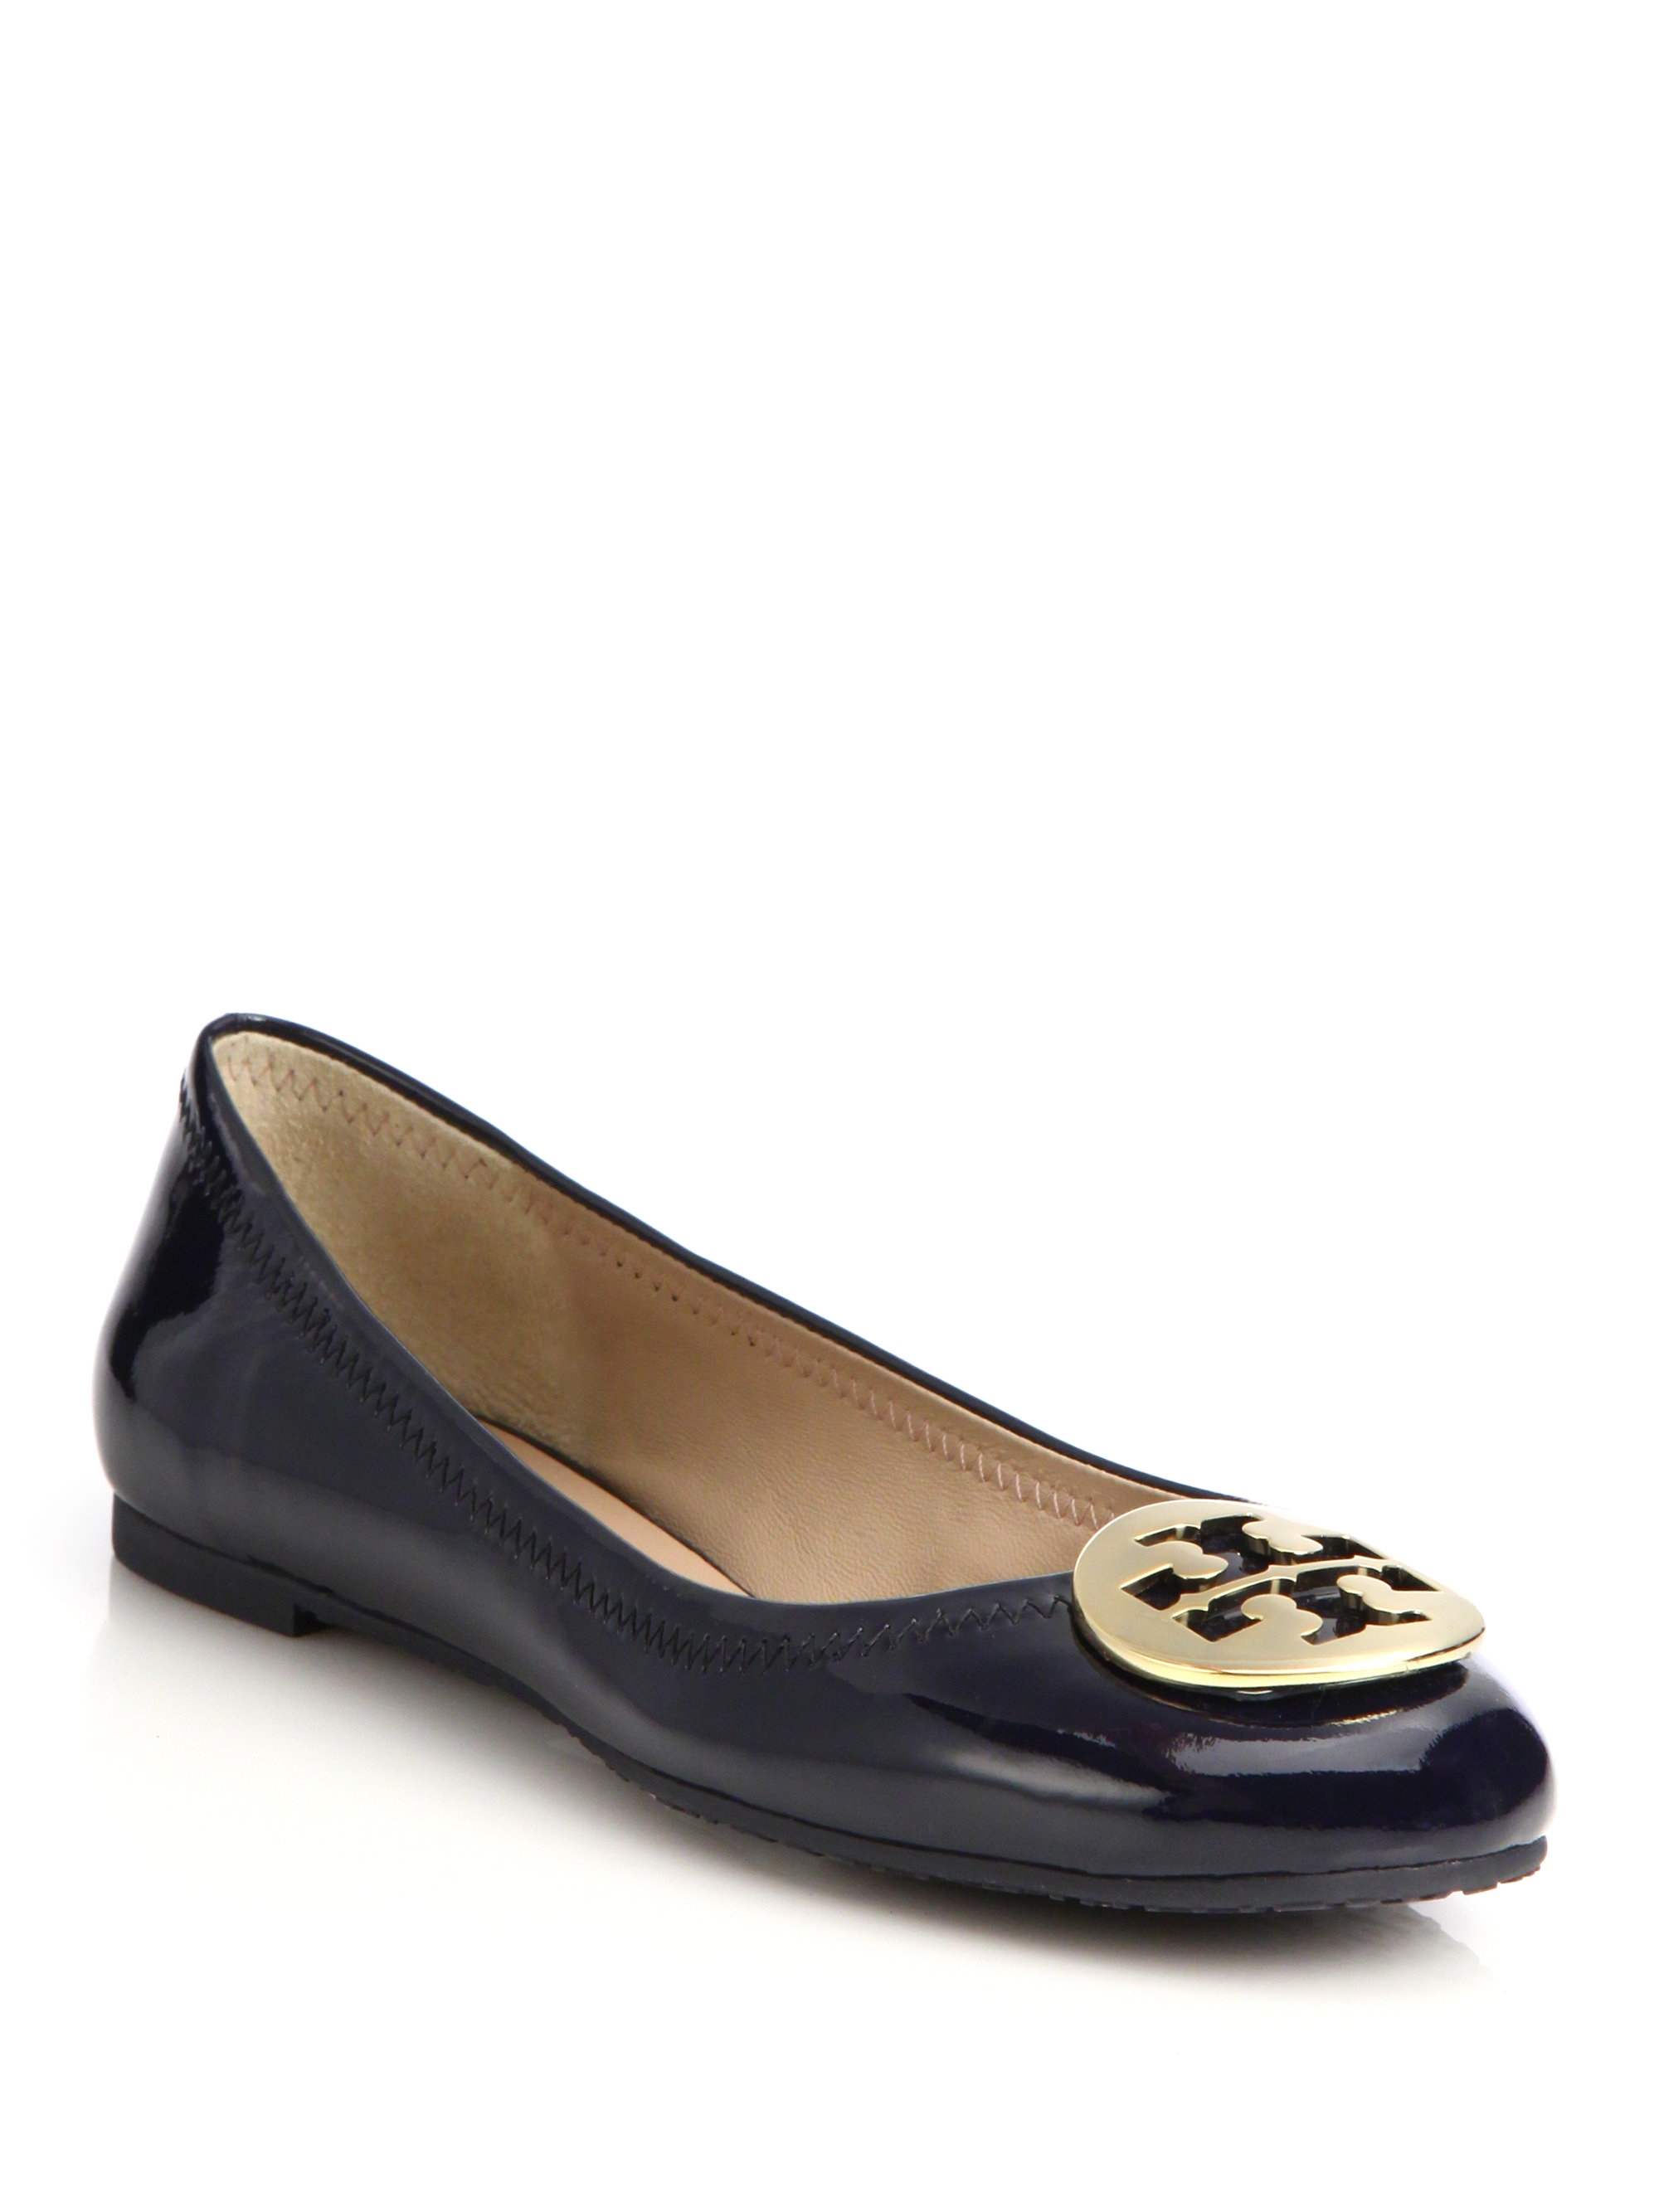 bc2997bc7dba ... where can i buy lyst tory burch reva patent leather ballet flats in red  c3222 bbda8